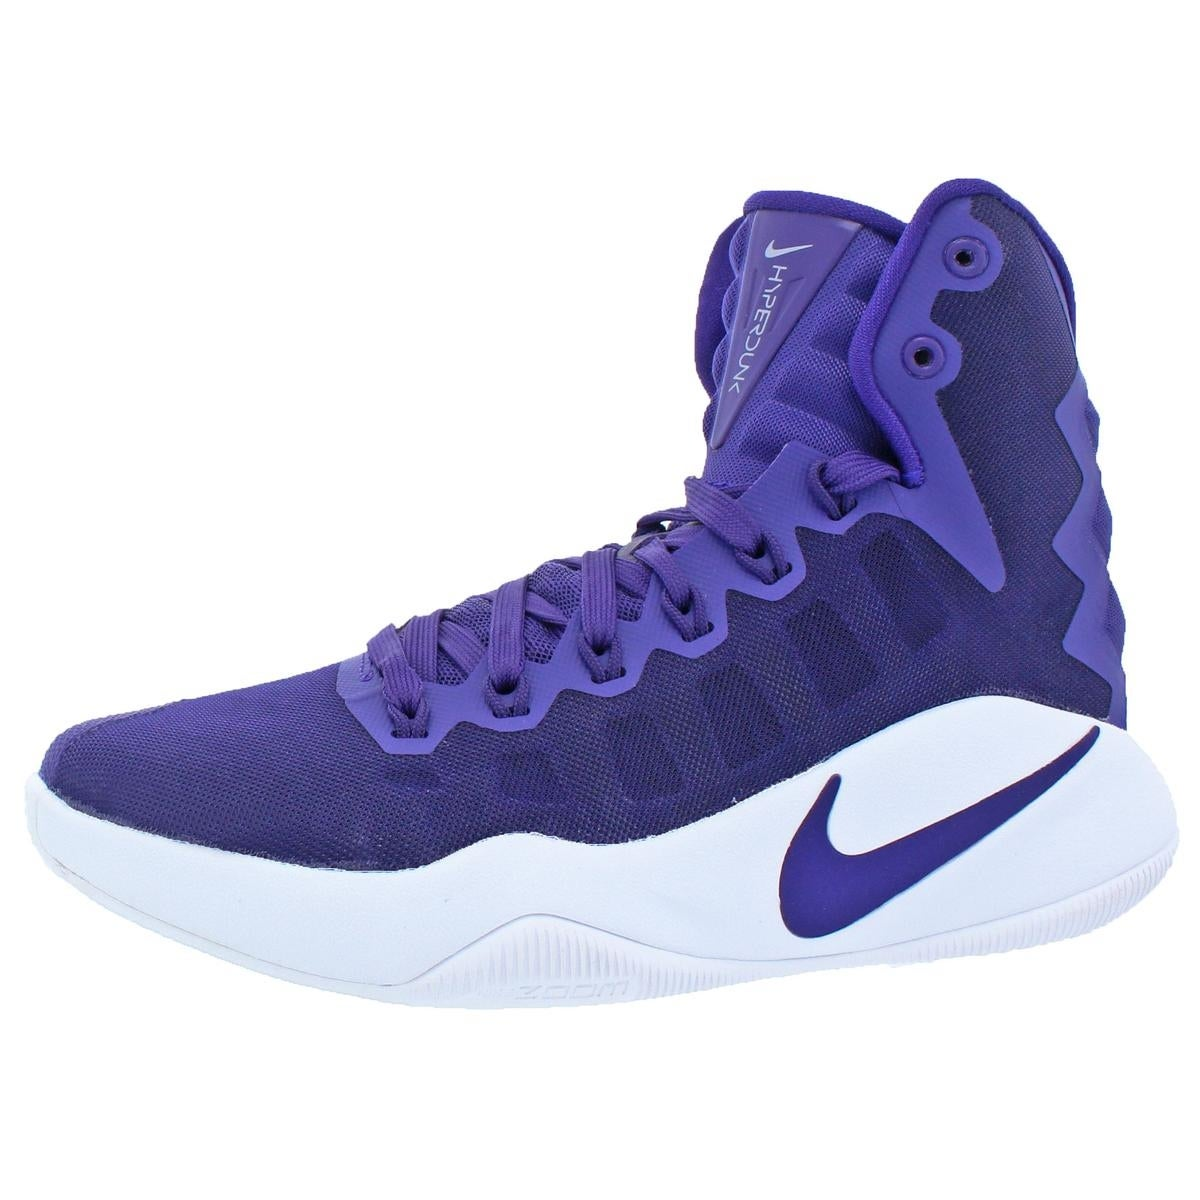 competitive price 41cad 79288 Shop Nike Womens Hyperdunk 2016 TB Basketball Shoes Nike Zoom Mid Top -  Free Shipping On Orders Over  45 - Overstock - 21803225